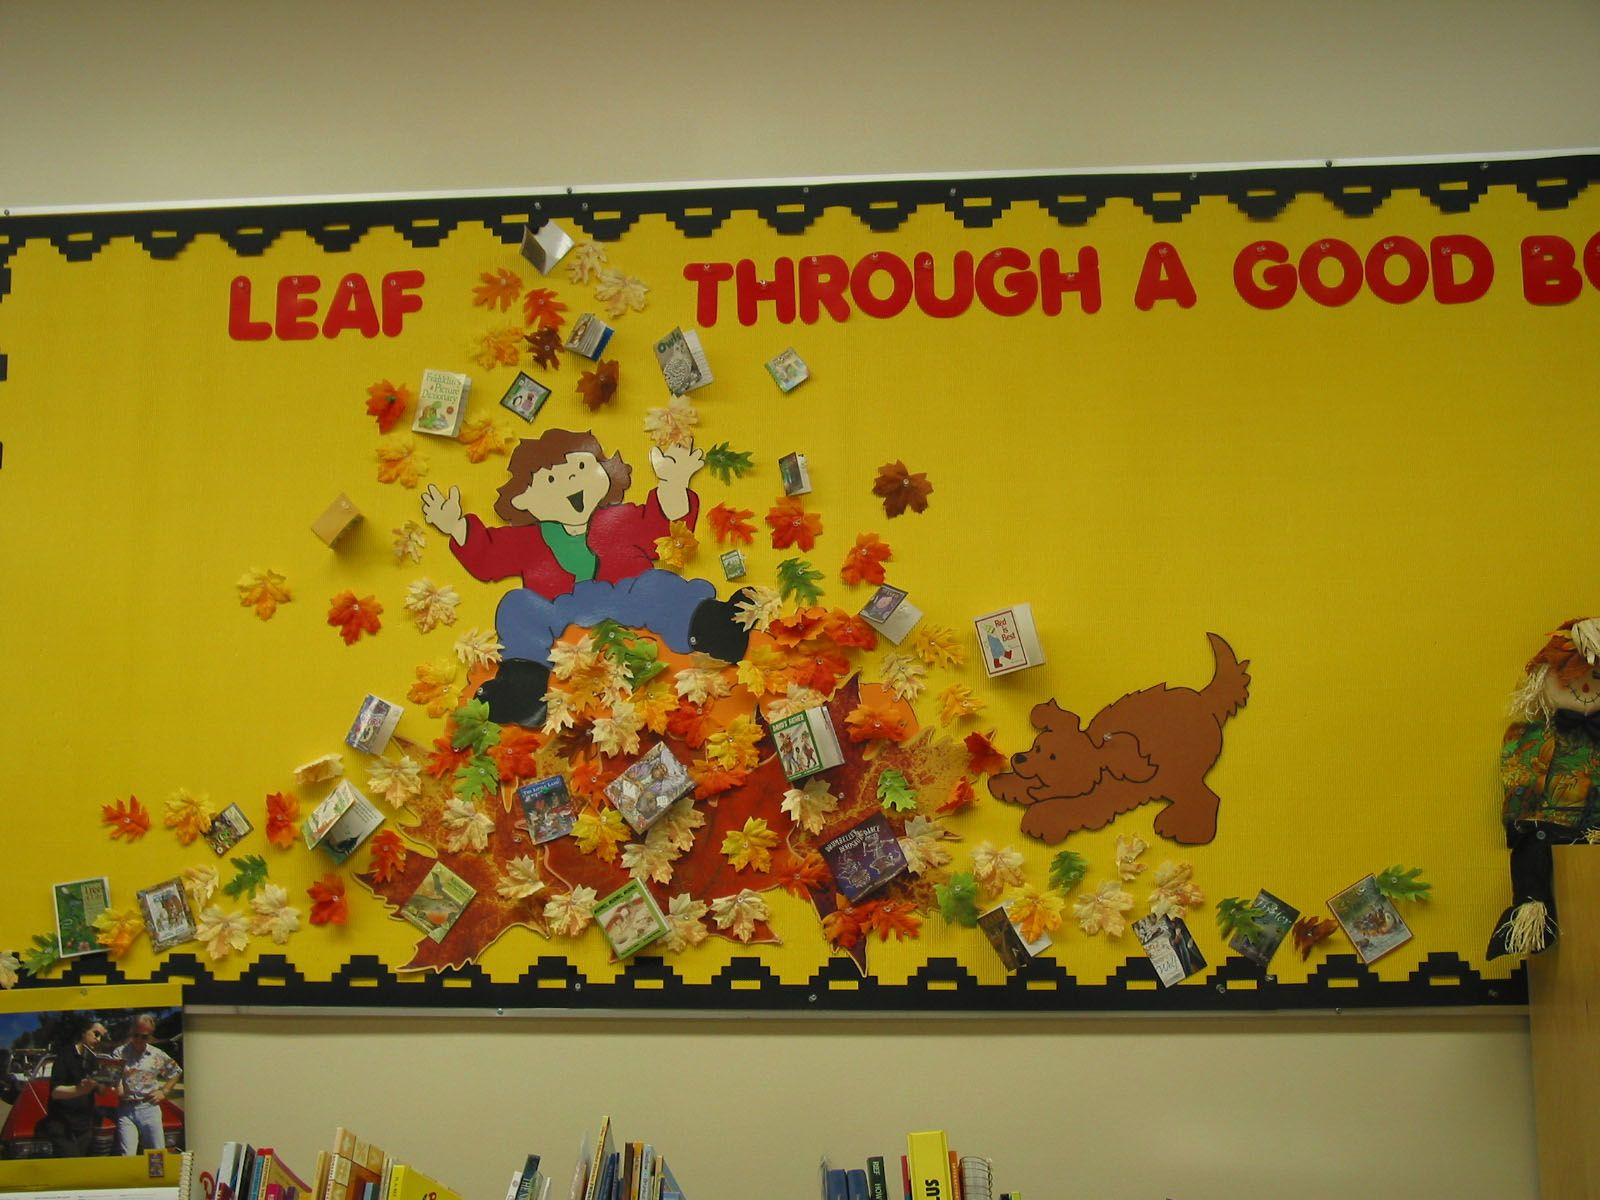 I like the slogan for this autumn bulletin board display that ...